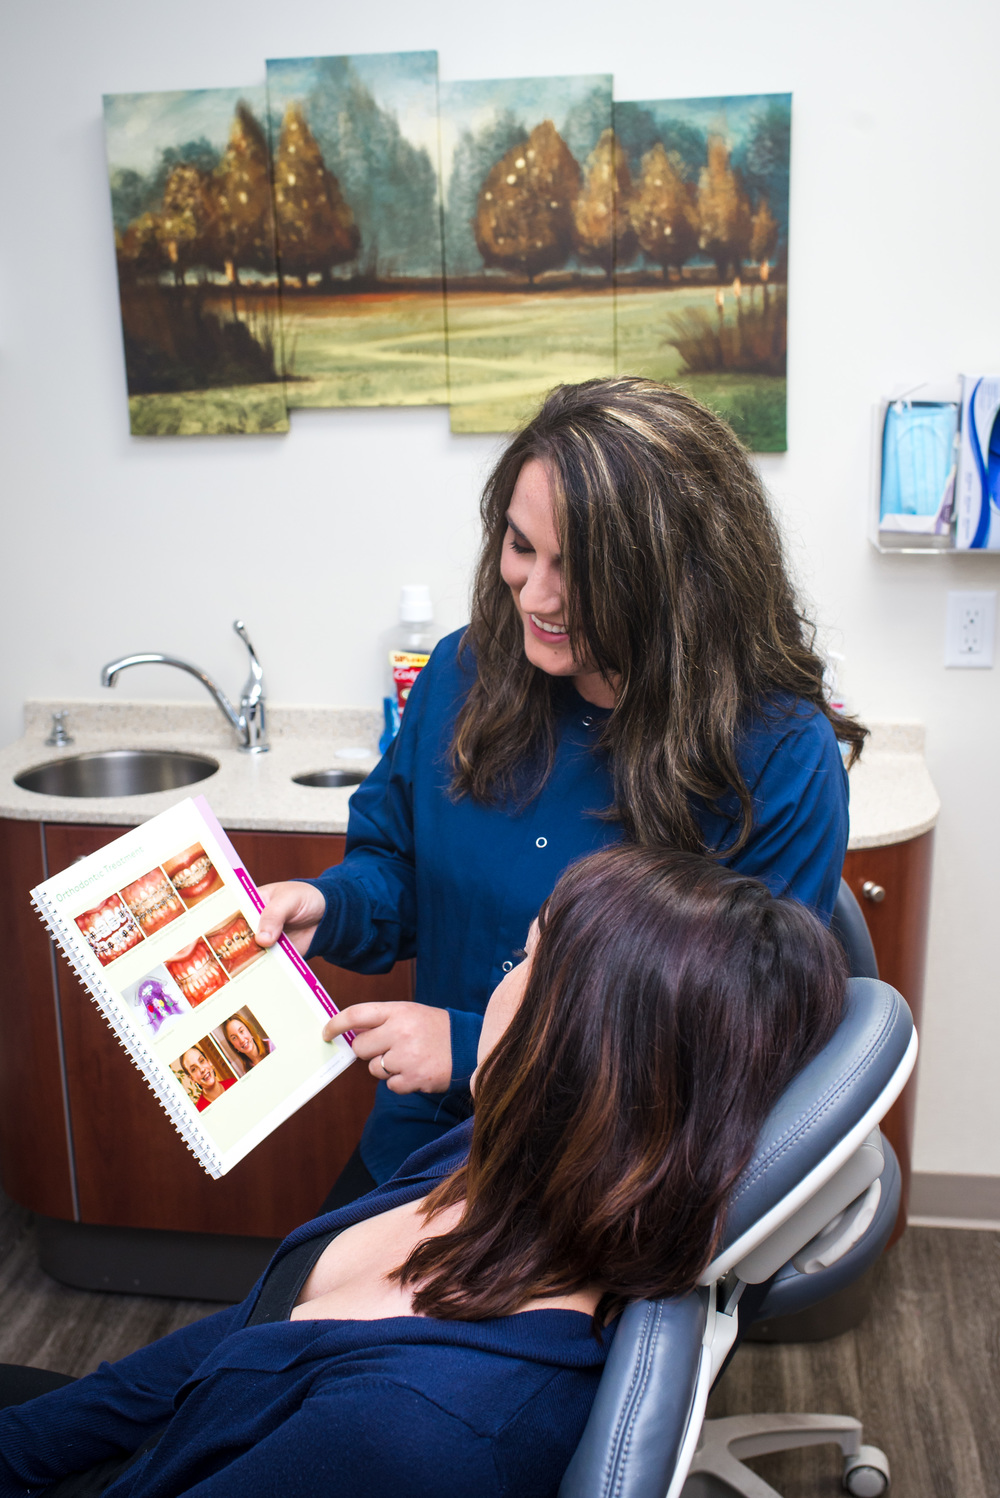 Manage periodontal disease with help from Independence's best dentist, Dr. Peter of Peter Family Dentistry.